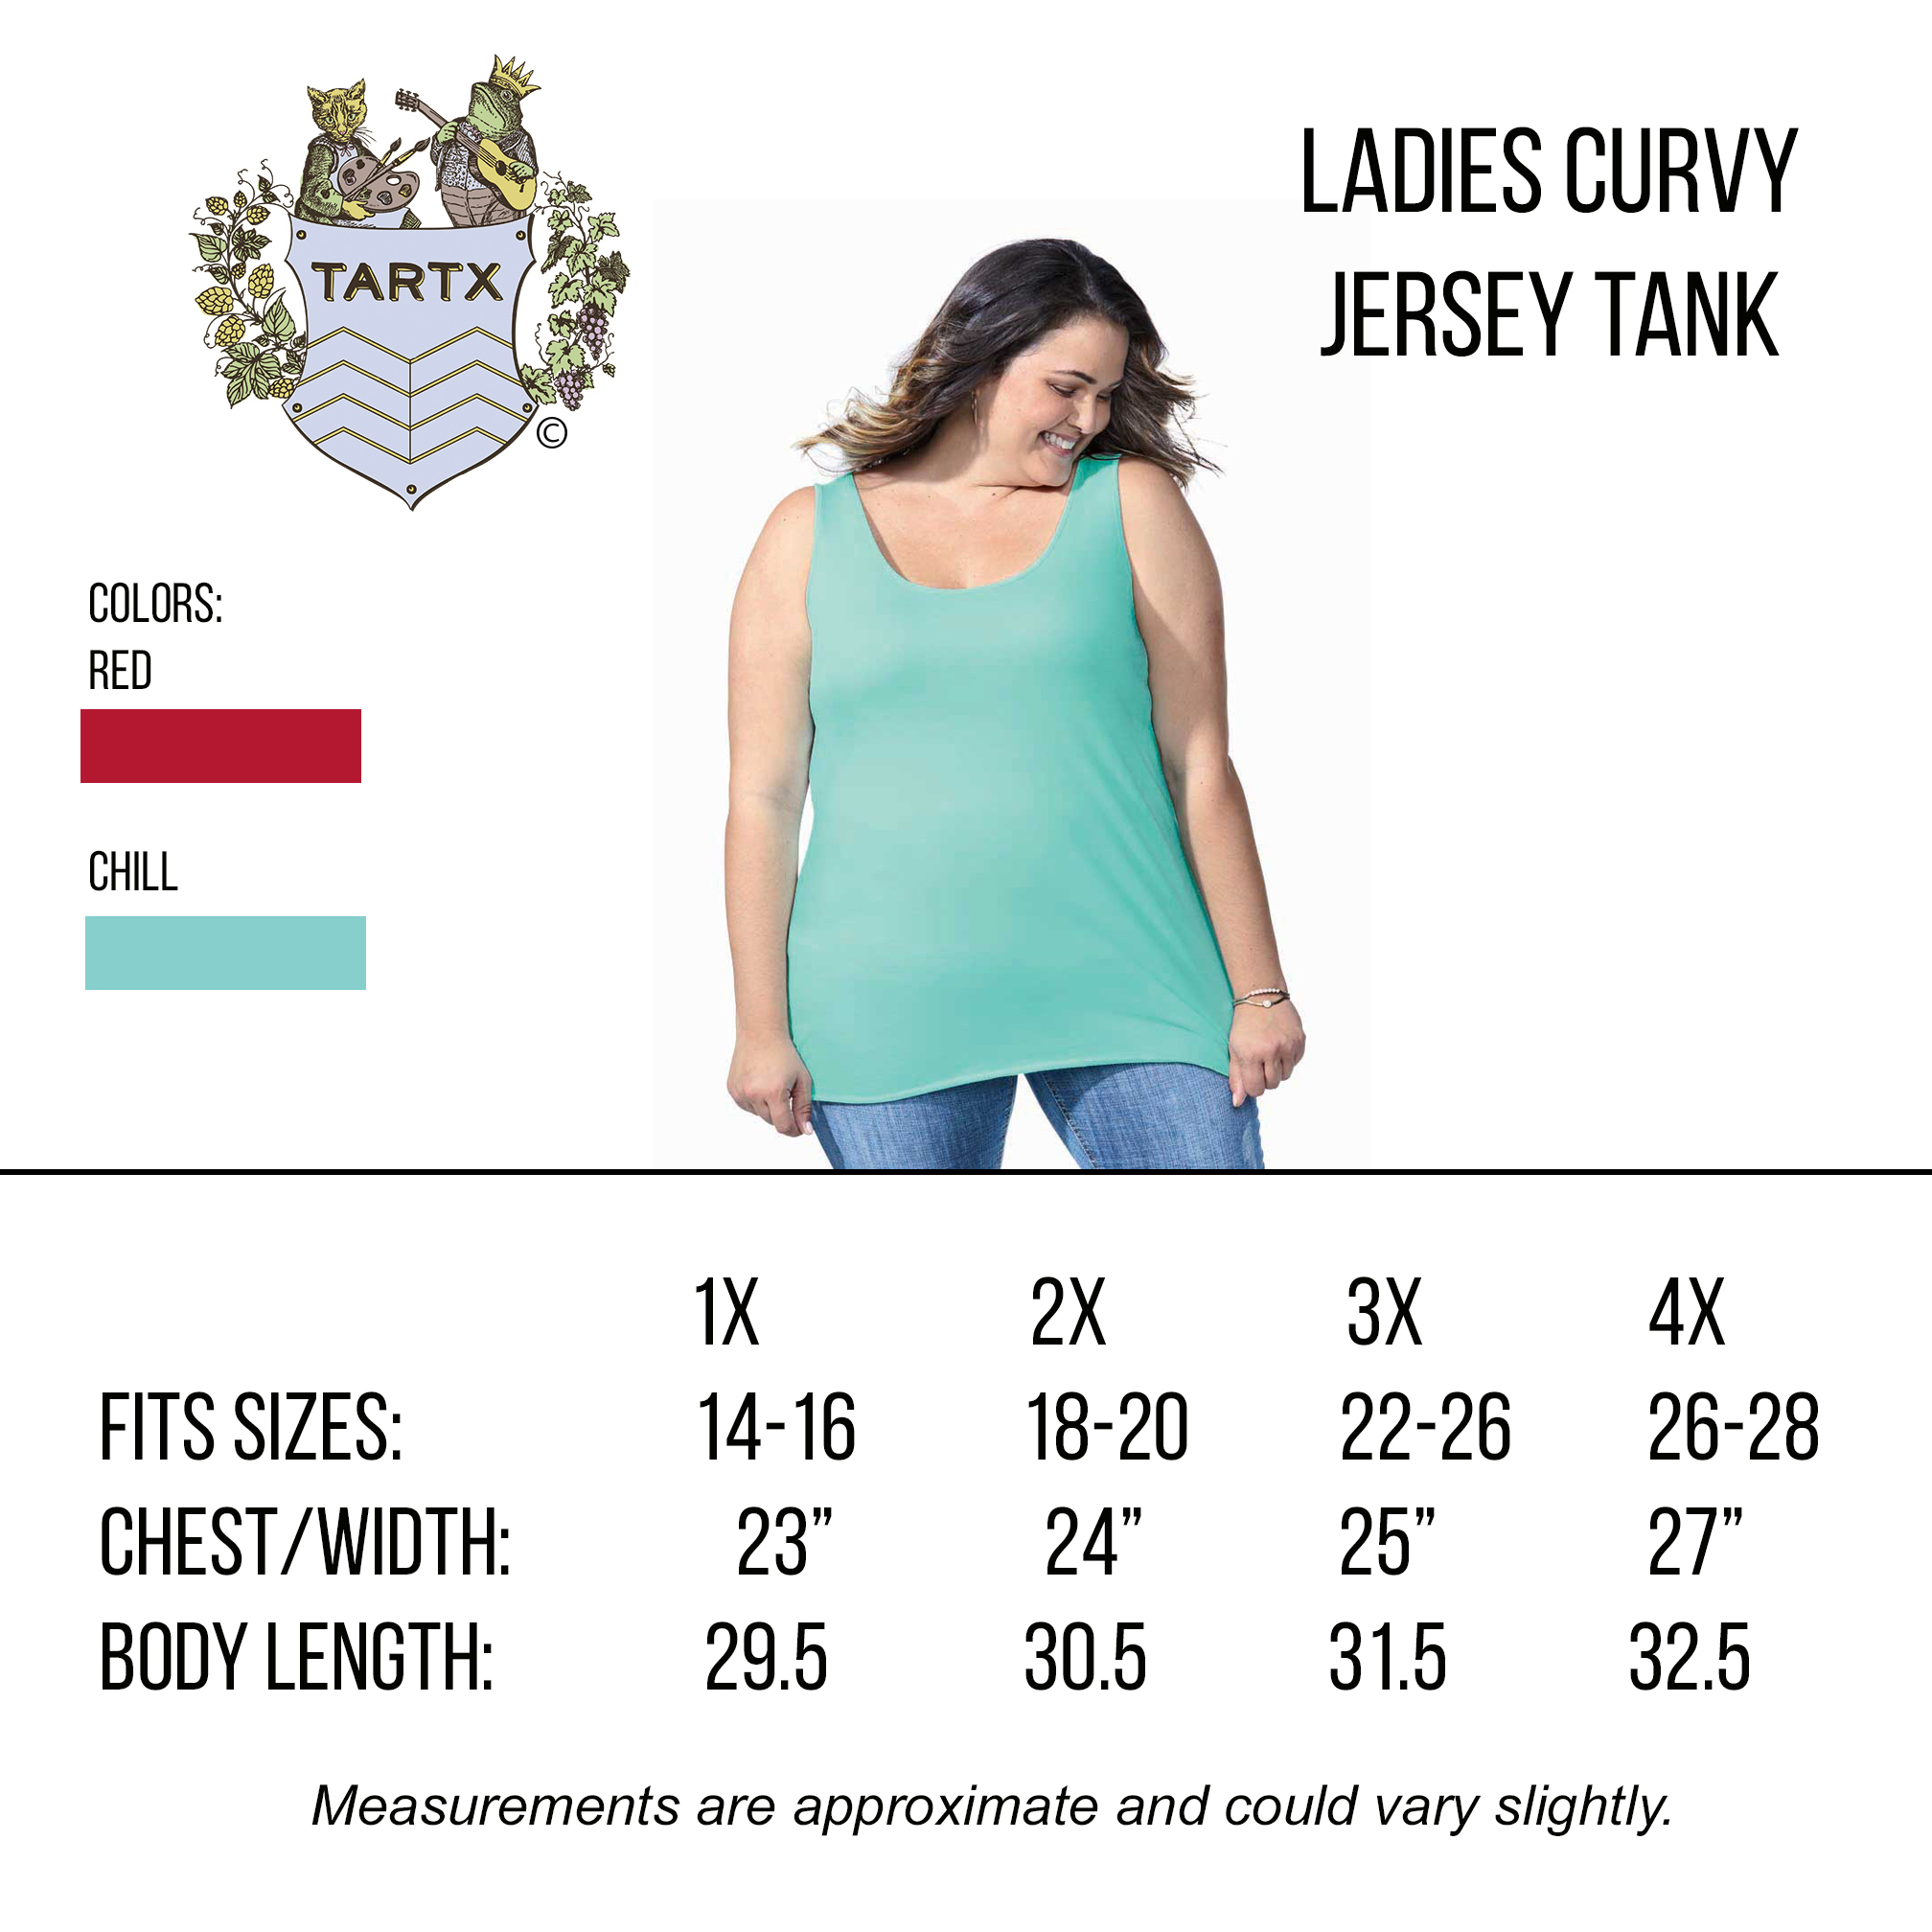 lat-curvy-tank-sizechart